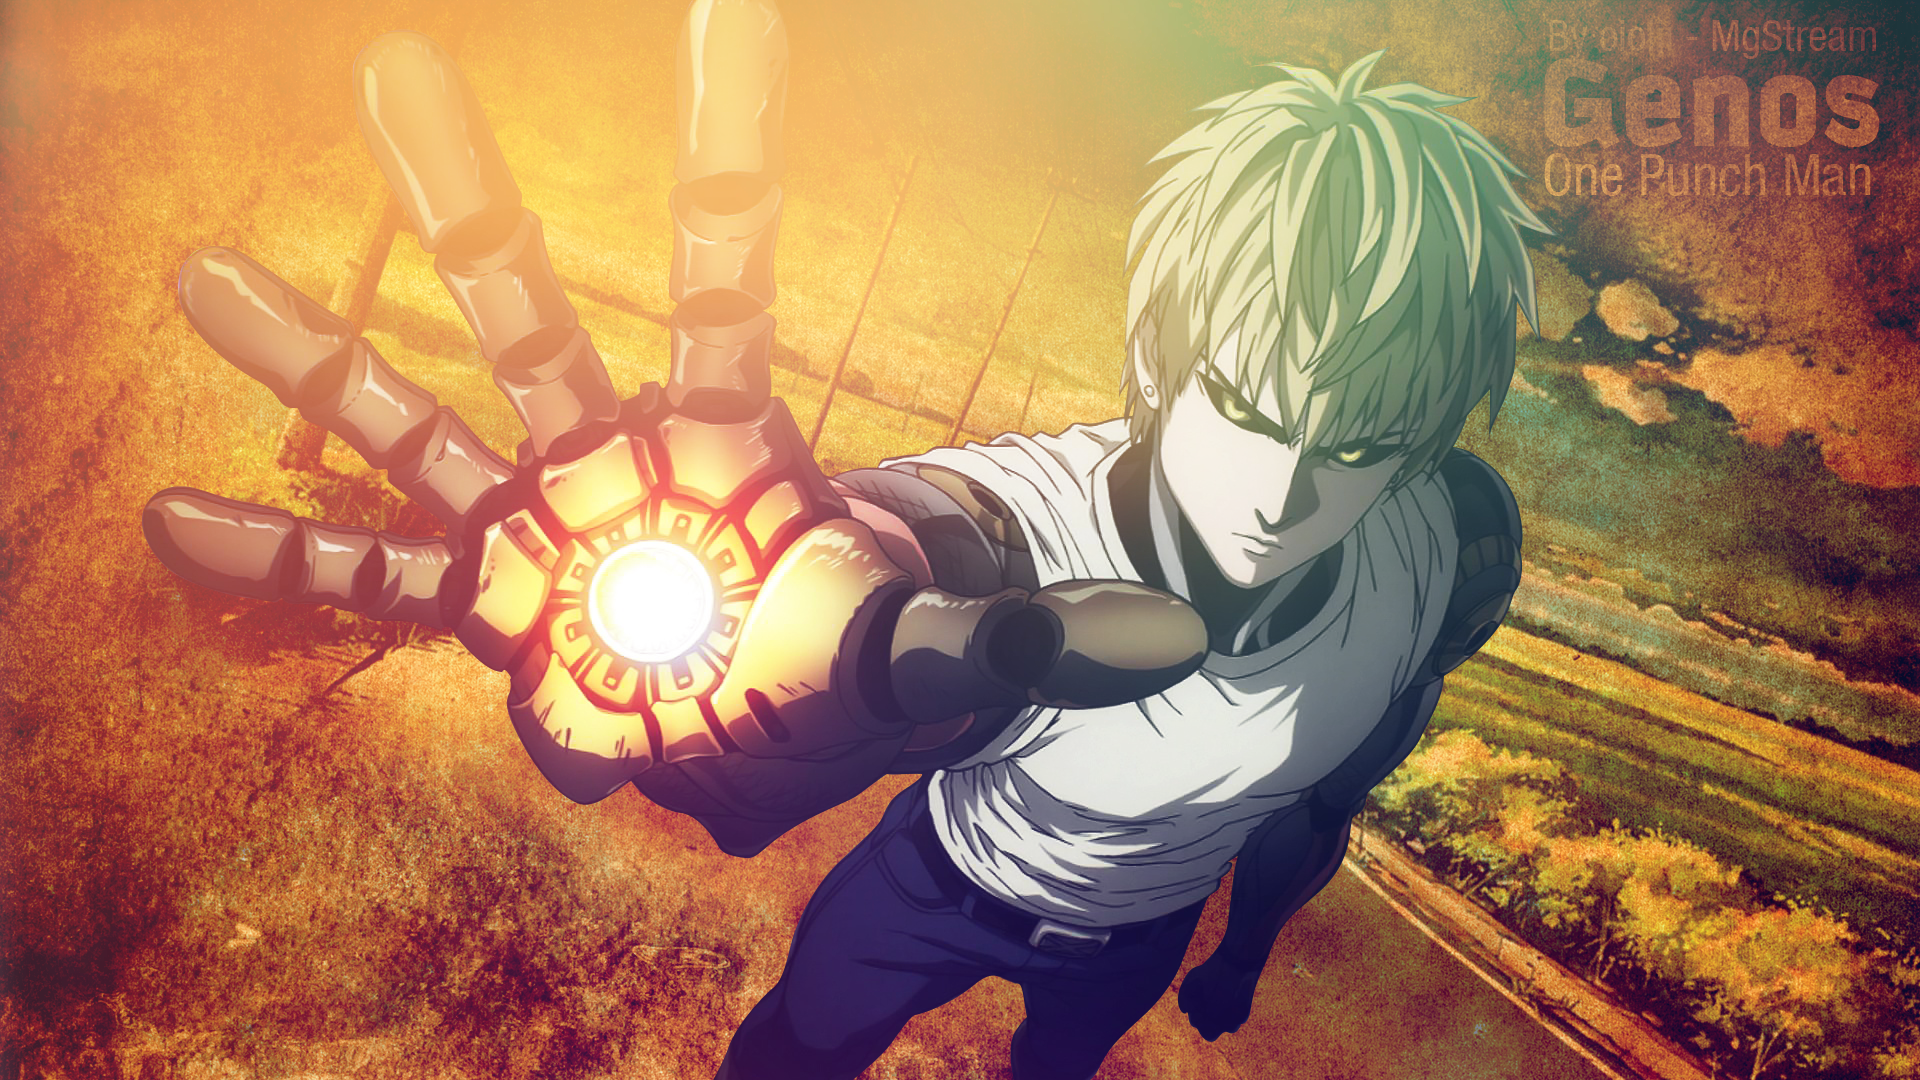 Anime One Punch Man Genos One Punch Man Wallpaper Com Imagens